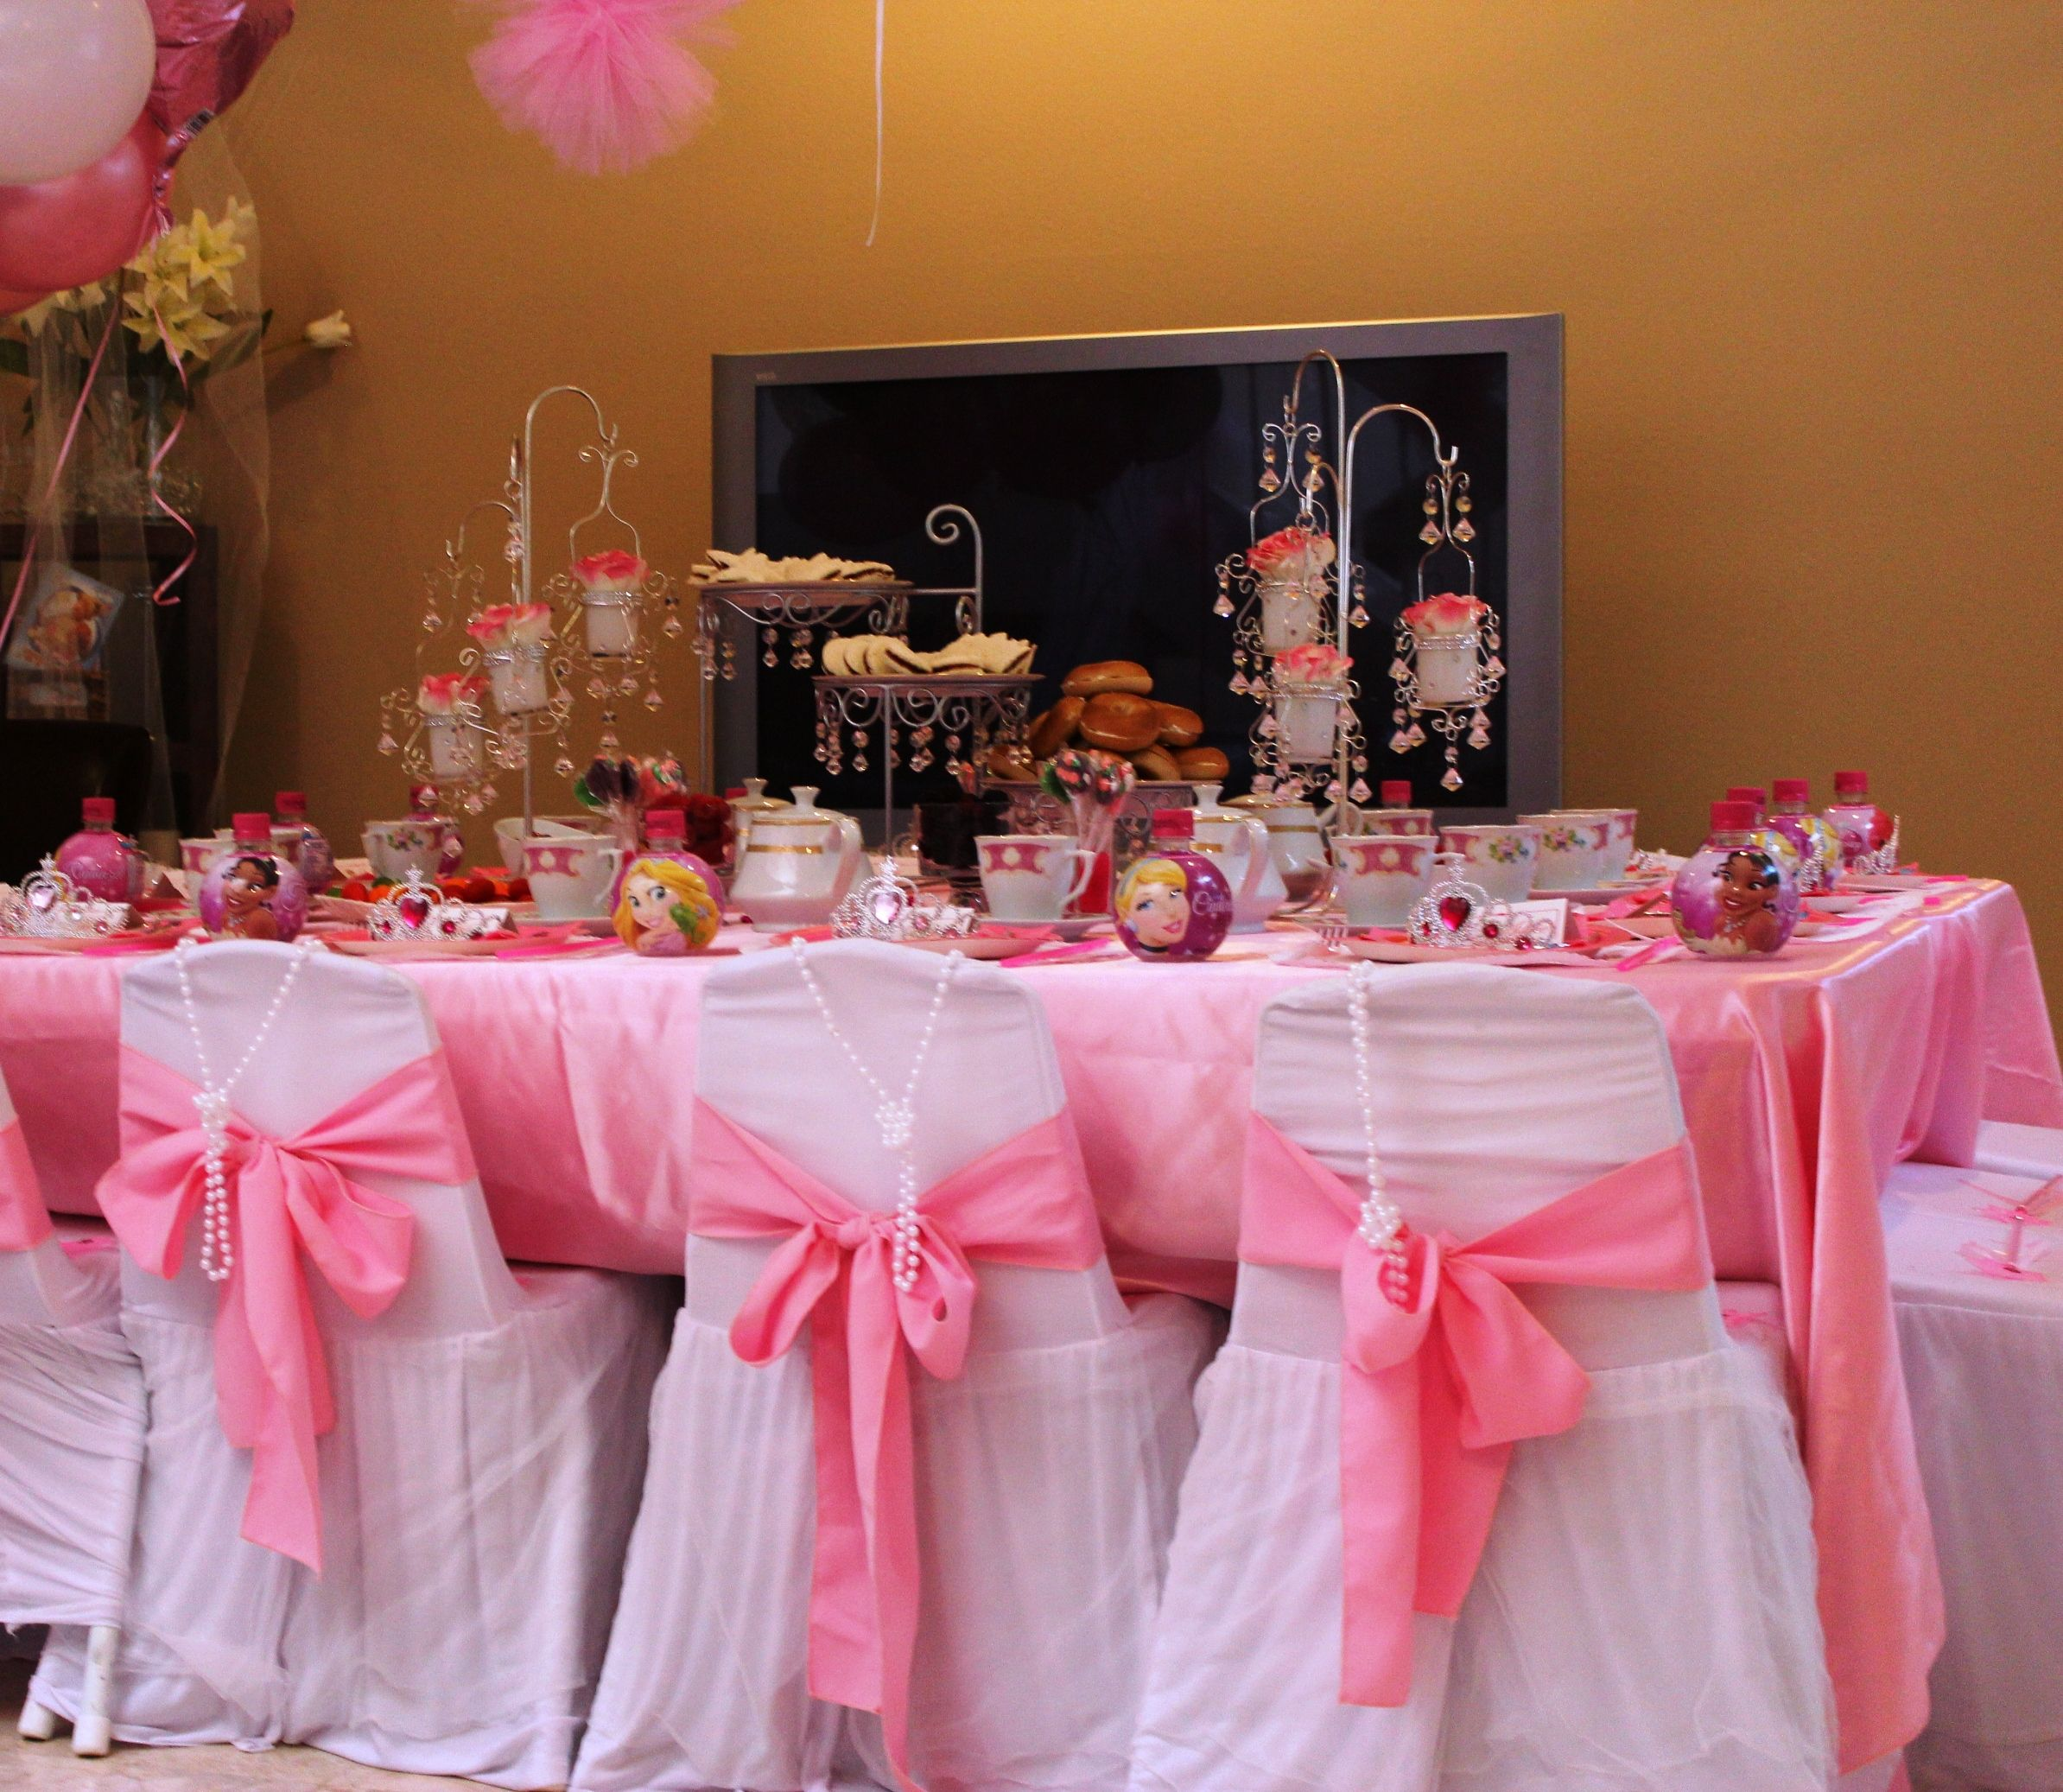 princess tea party ideas kid sized tables and chairs with princess style chair covers